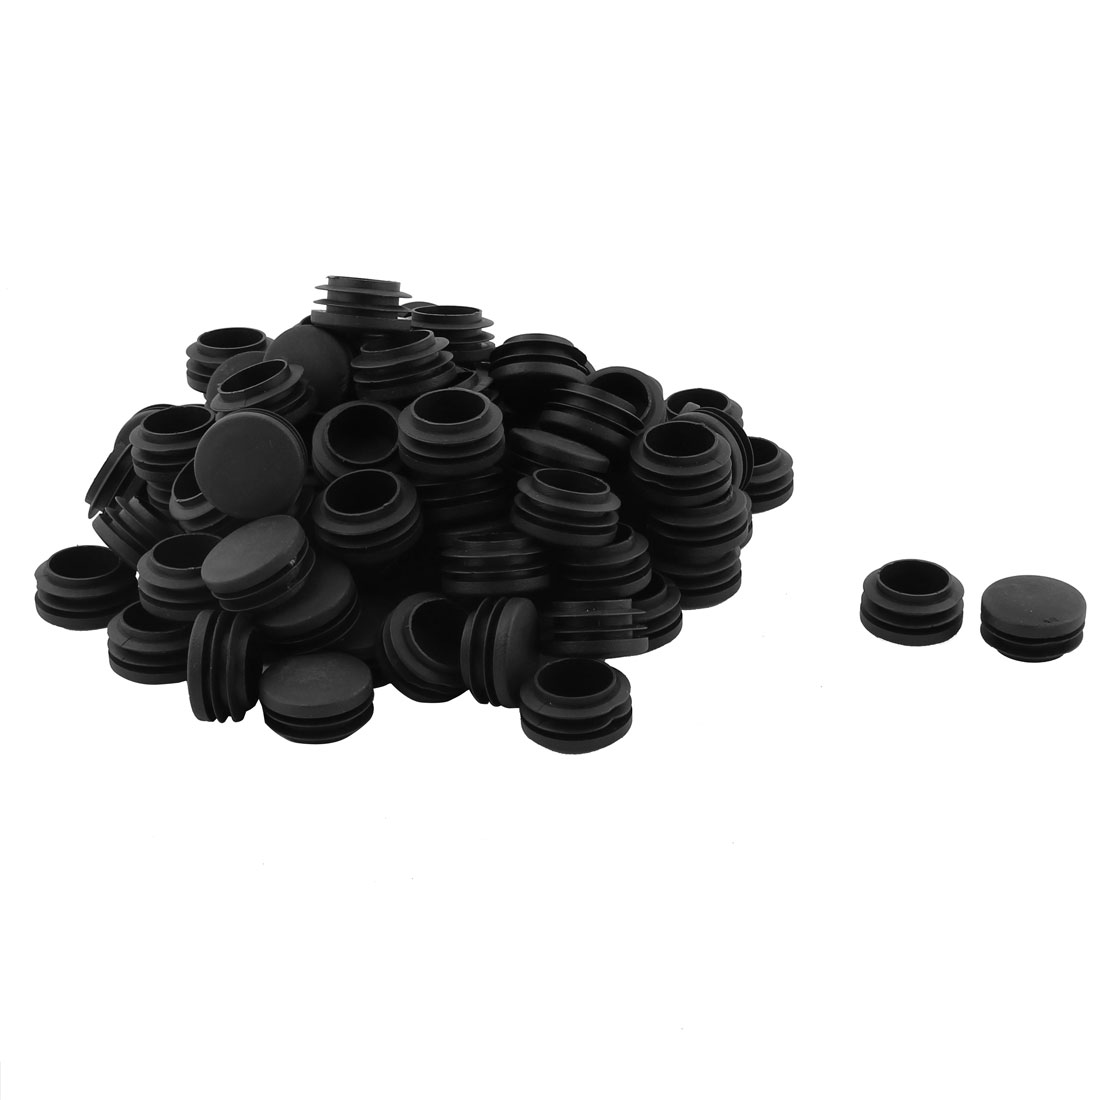 Office Plastic Round Shaped Furniture Table Chair Leg Foot Tube Insert Black 100 Pcs 3.5cm Diameter